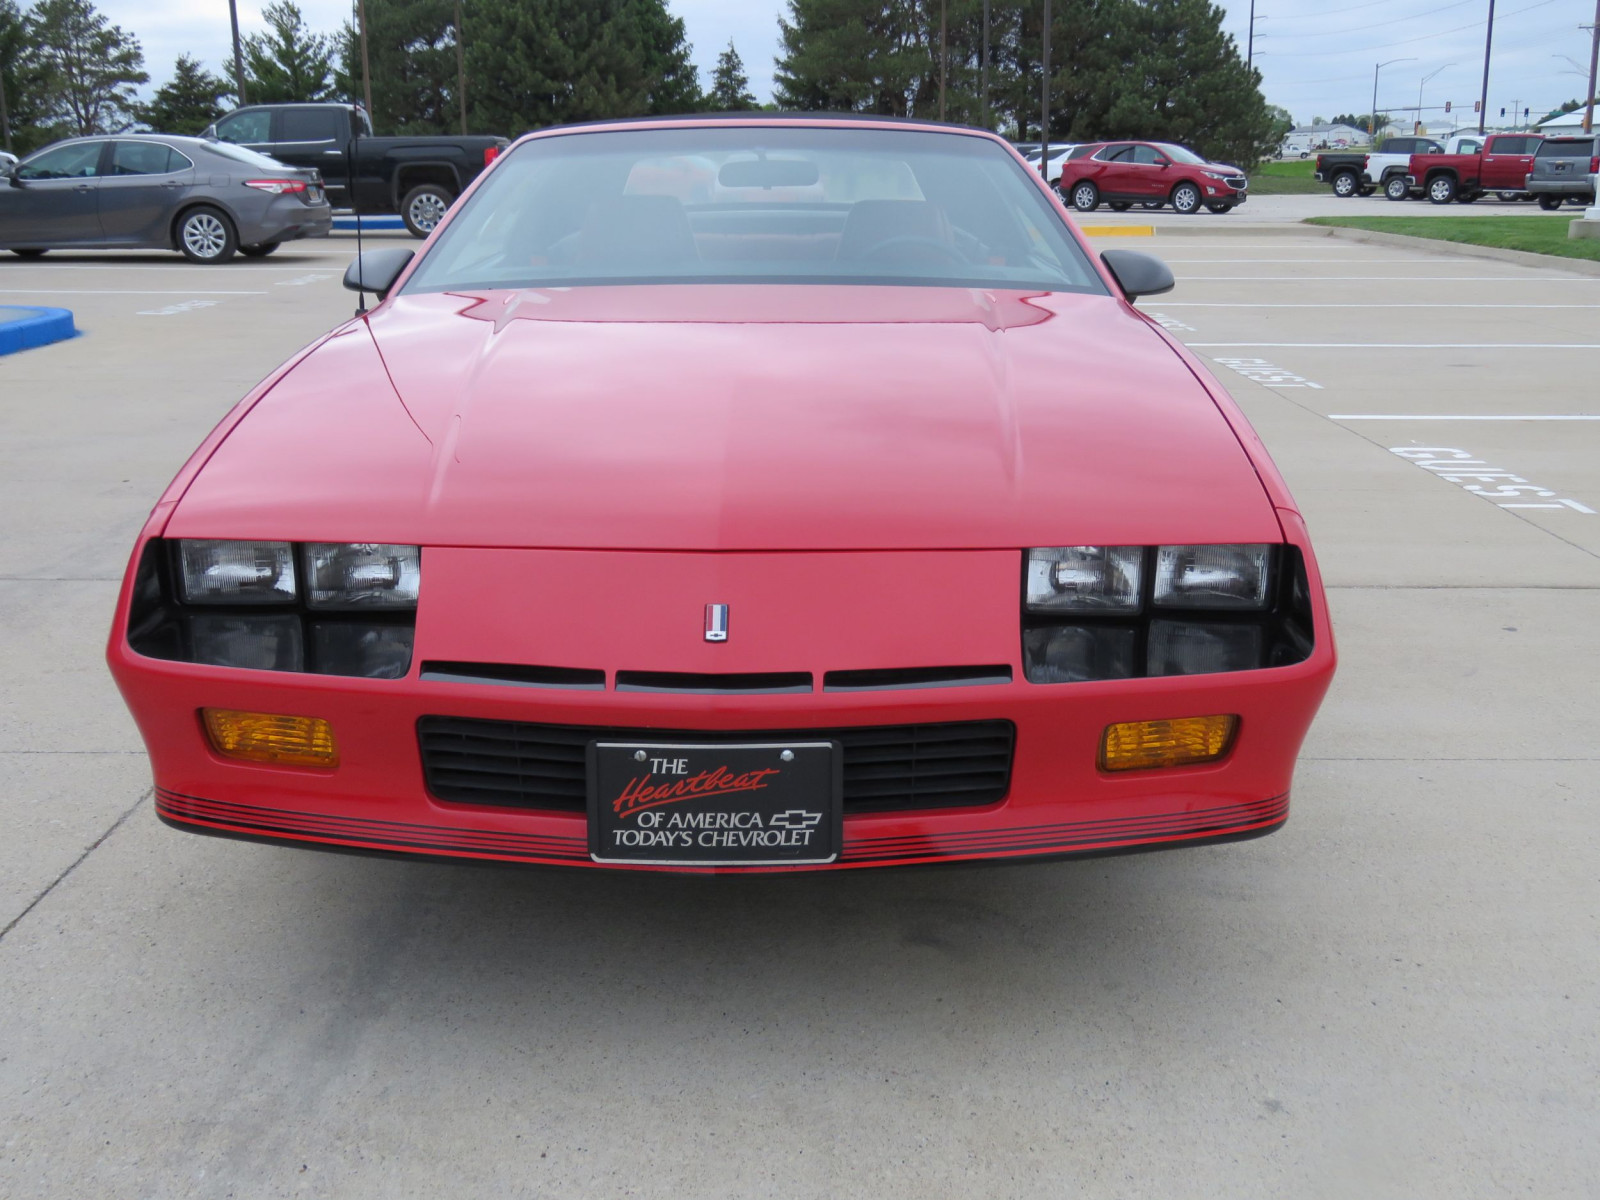 1987 Chevrolet Camaro RS Convertible - Image 3